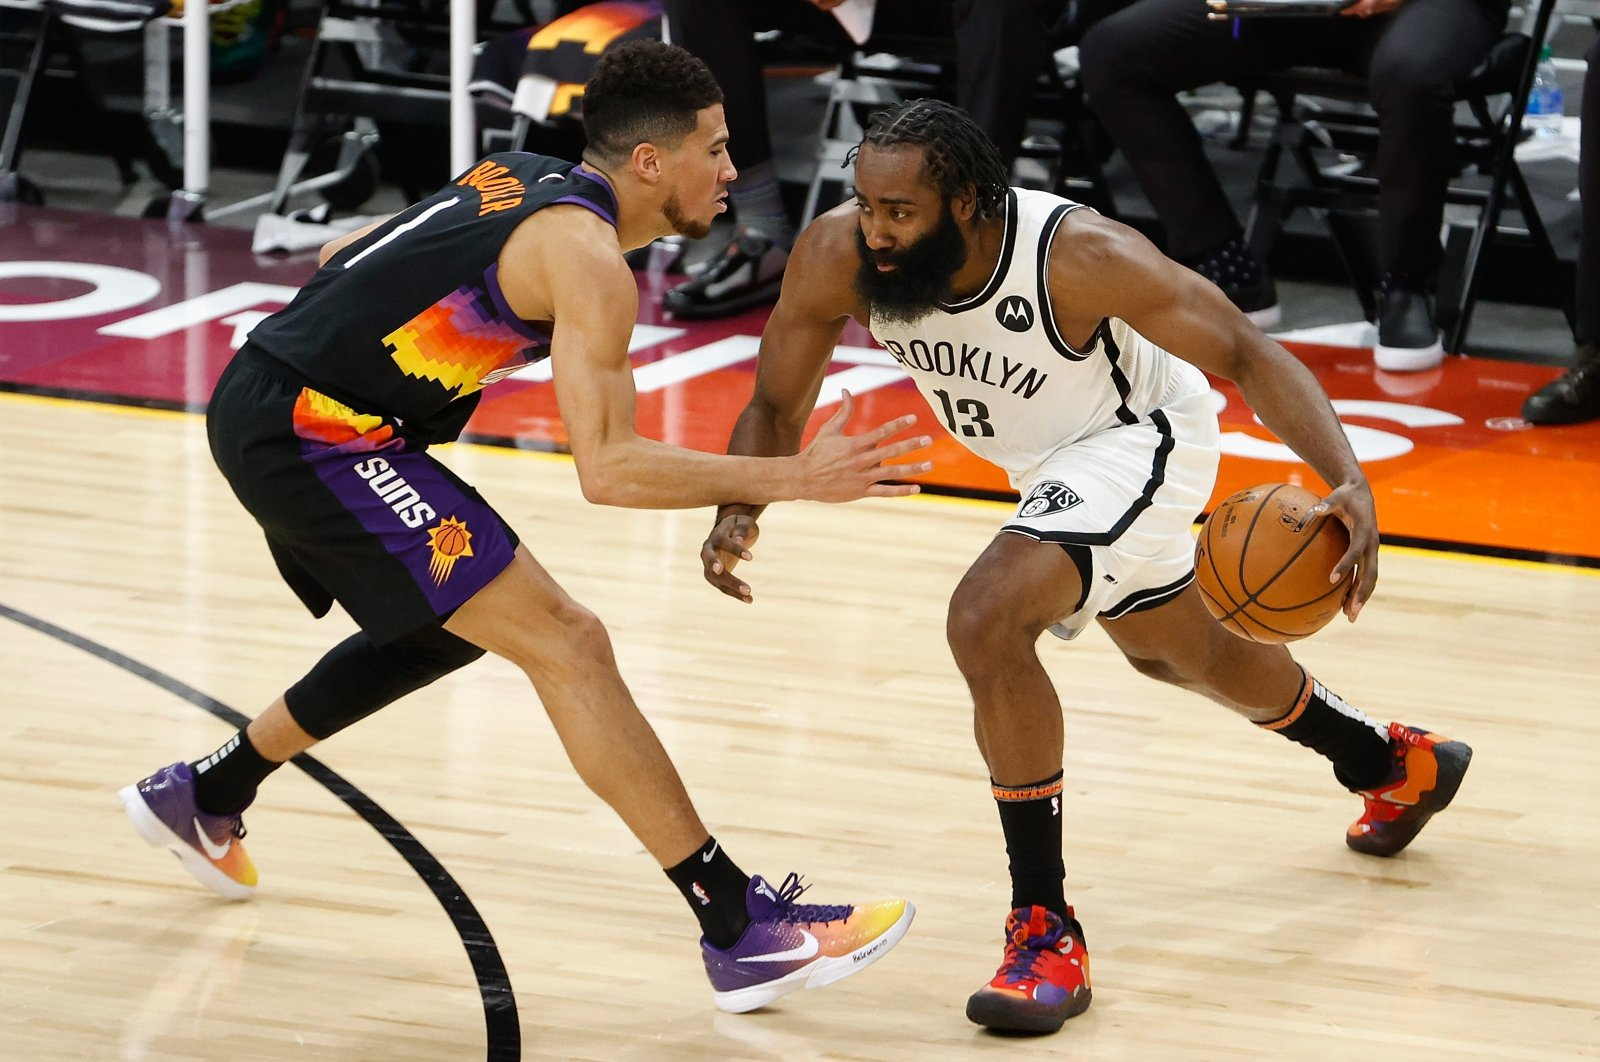 Brooklyn Nets' James Harden (R) drives the ball against Phoenix Suns' Devin Booker (L) during the second half of their NBA game at Phoenix Suns Arena, Phoenix, Arizona, Feb. 16, 2021. (AFP Photo)